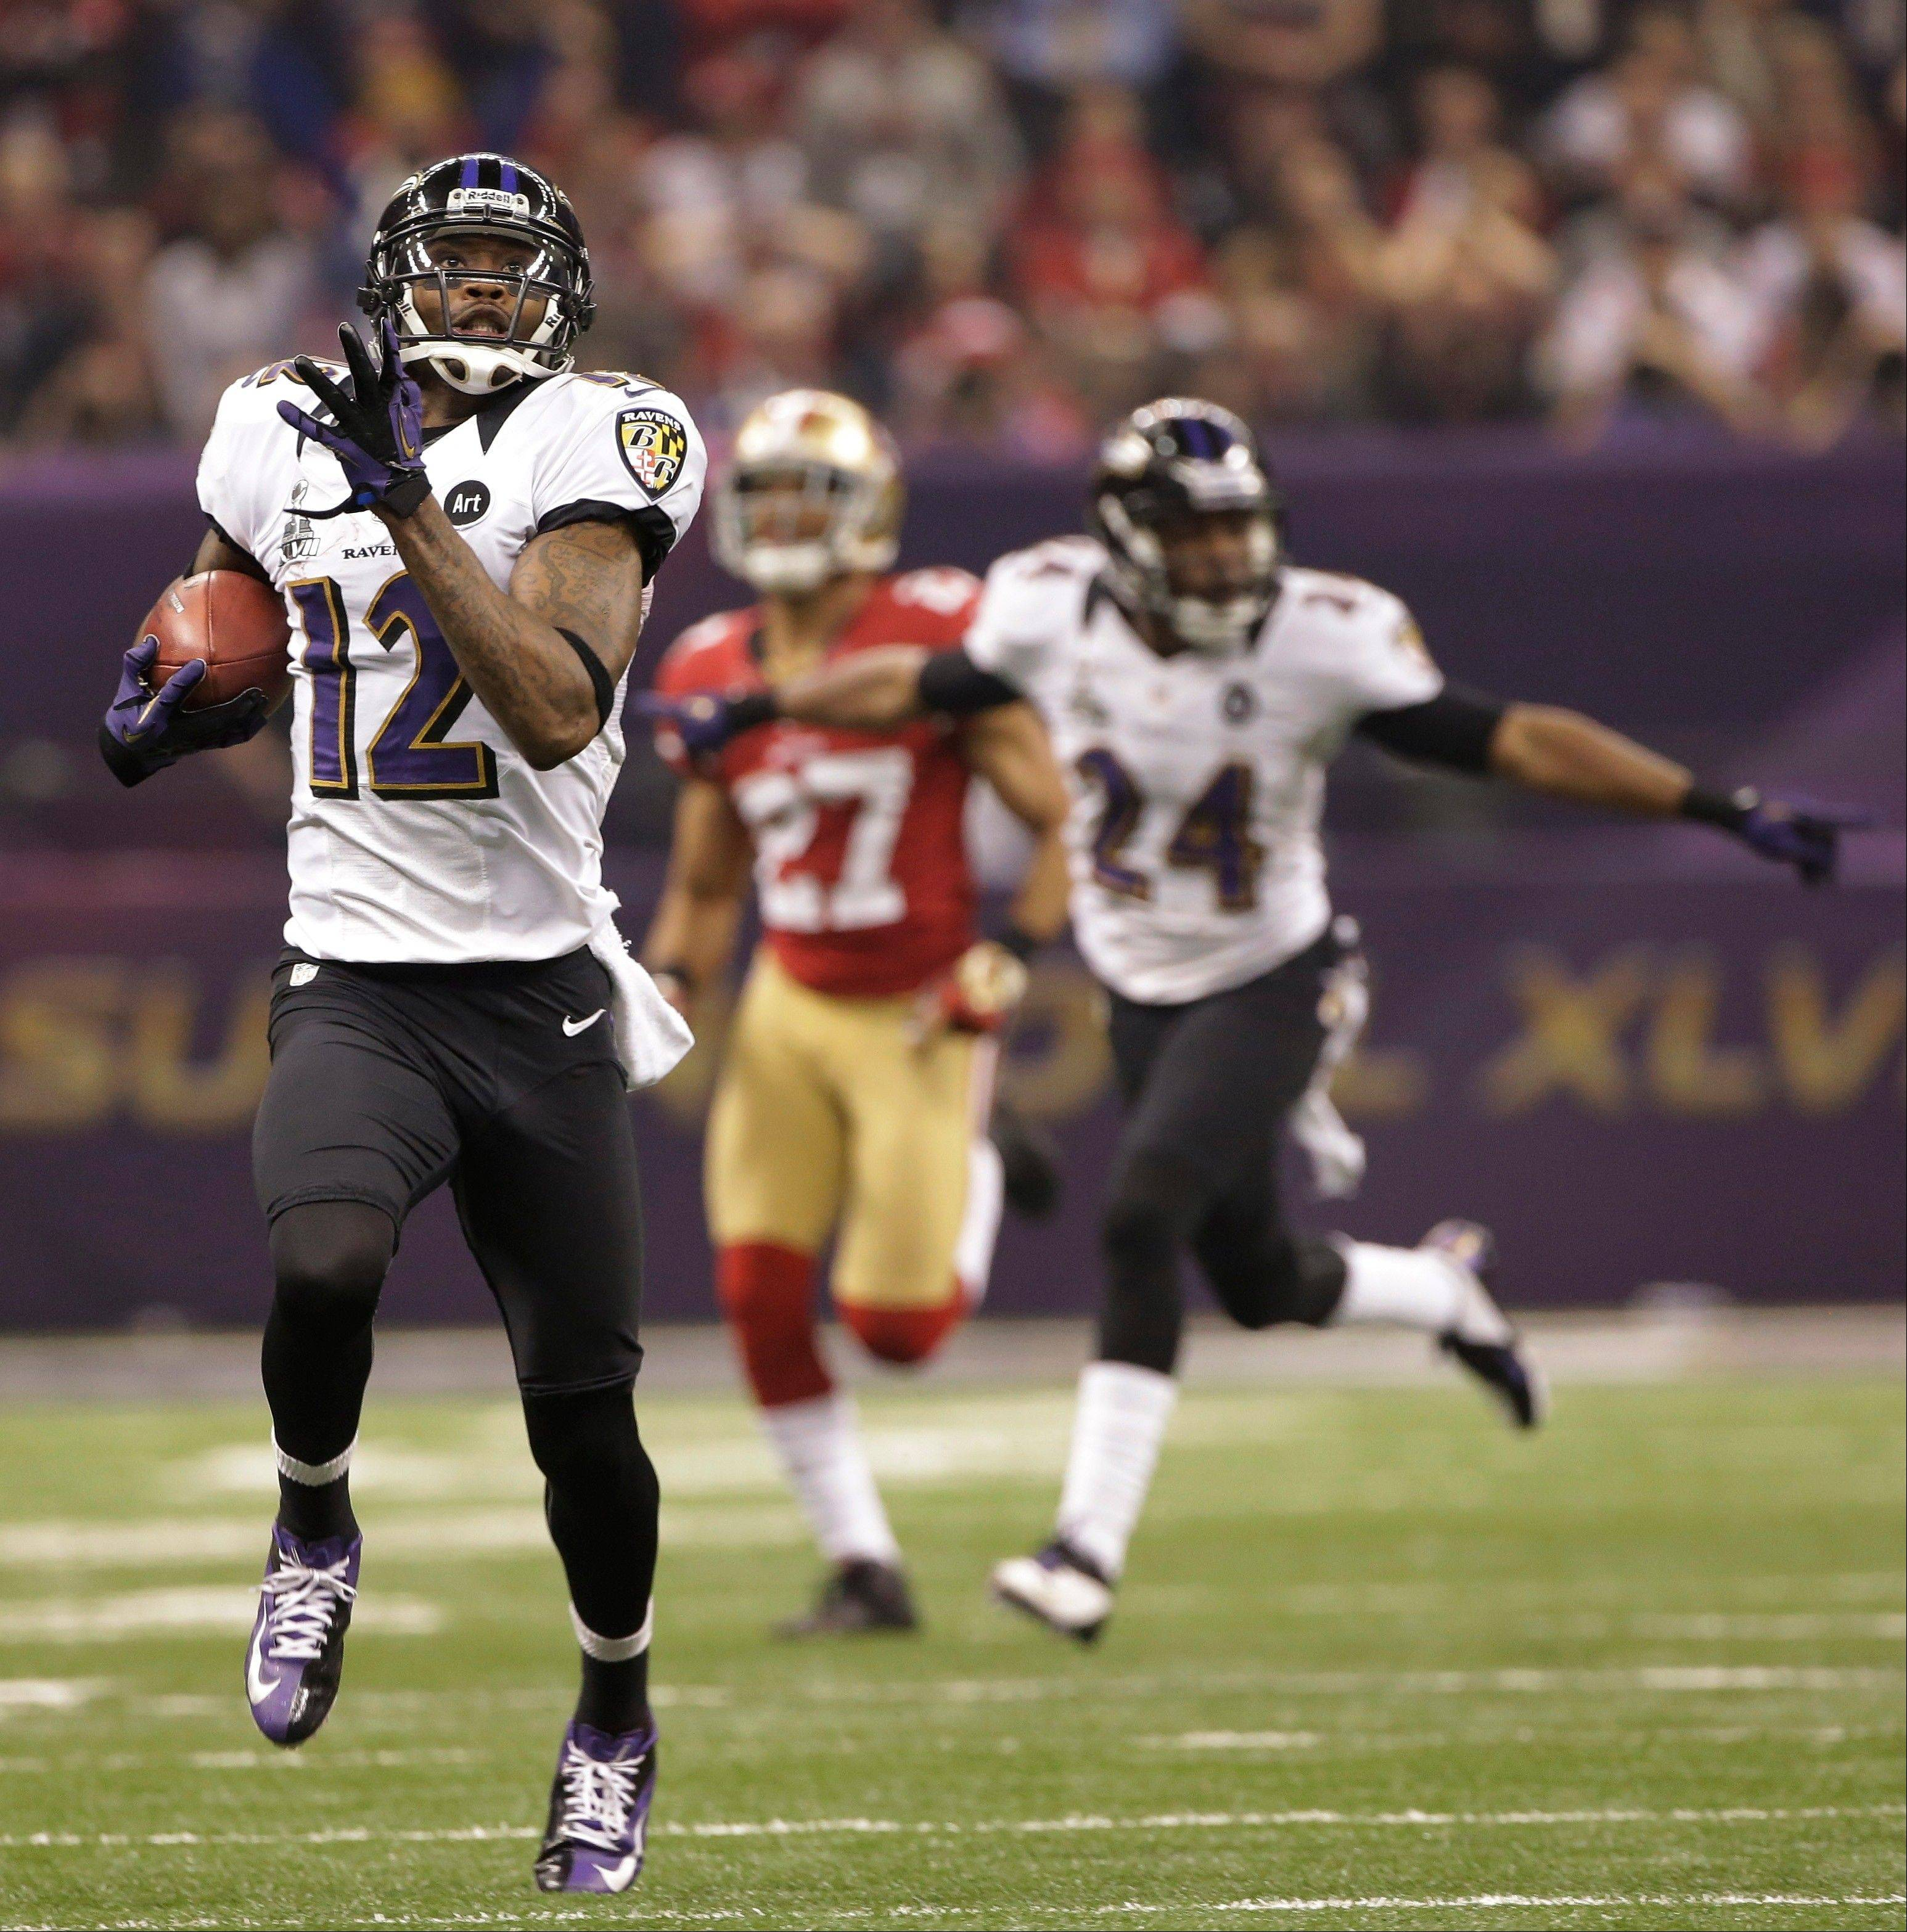 Baltimore Ravens wide receiver Jacoby Jones (12) runs for a touchdown during the second half.